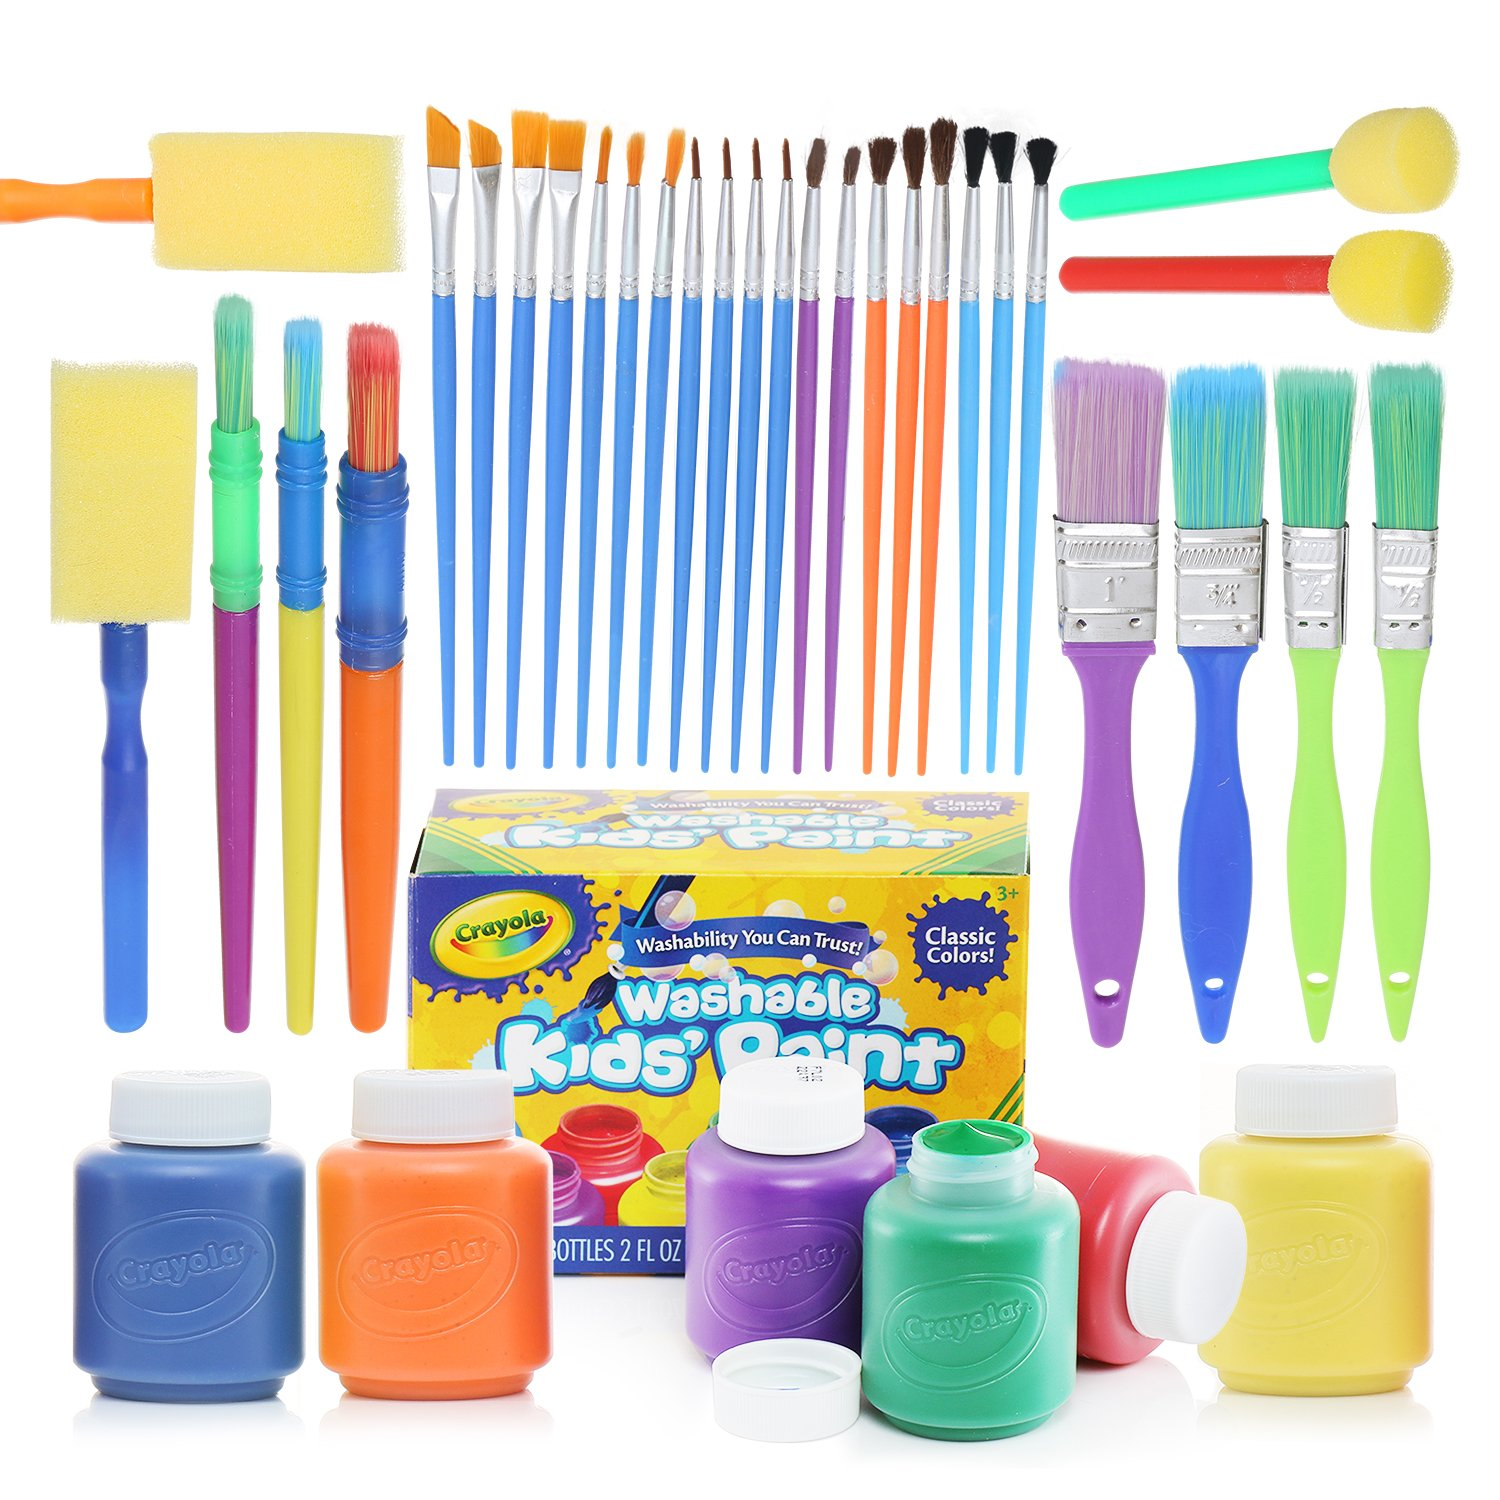 Complete Set of 30 Paint Brushes Bundle with Crayola Washable Kid's Paint (6 count) - Washable Kids Paints and Paintbrush Set - 2oz Assorted Bottles - Perfect for Kids Age 3+ by glokers